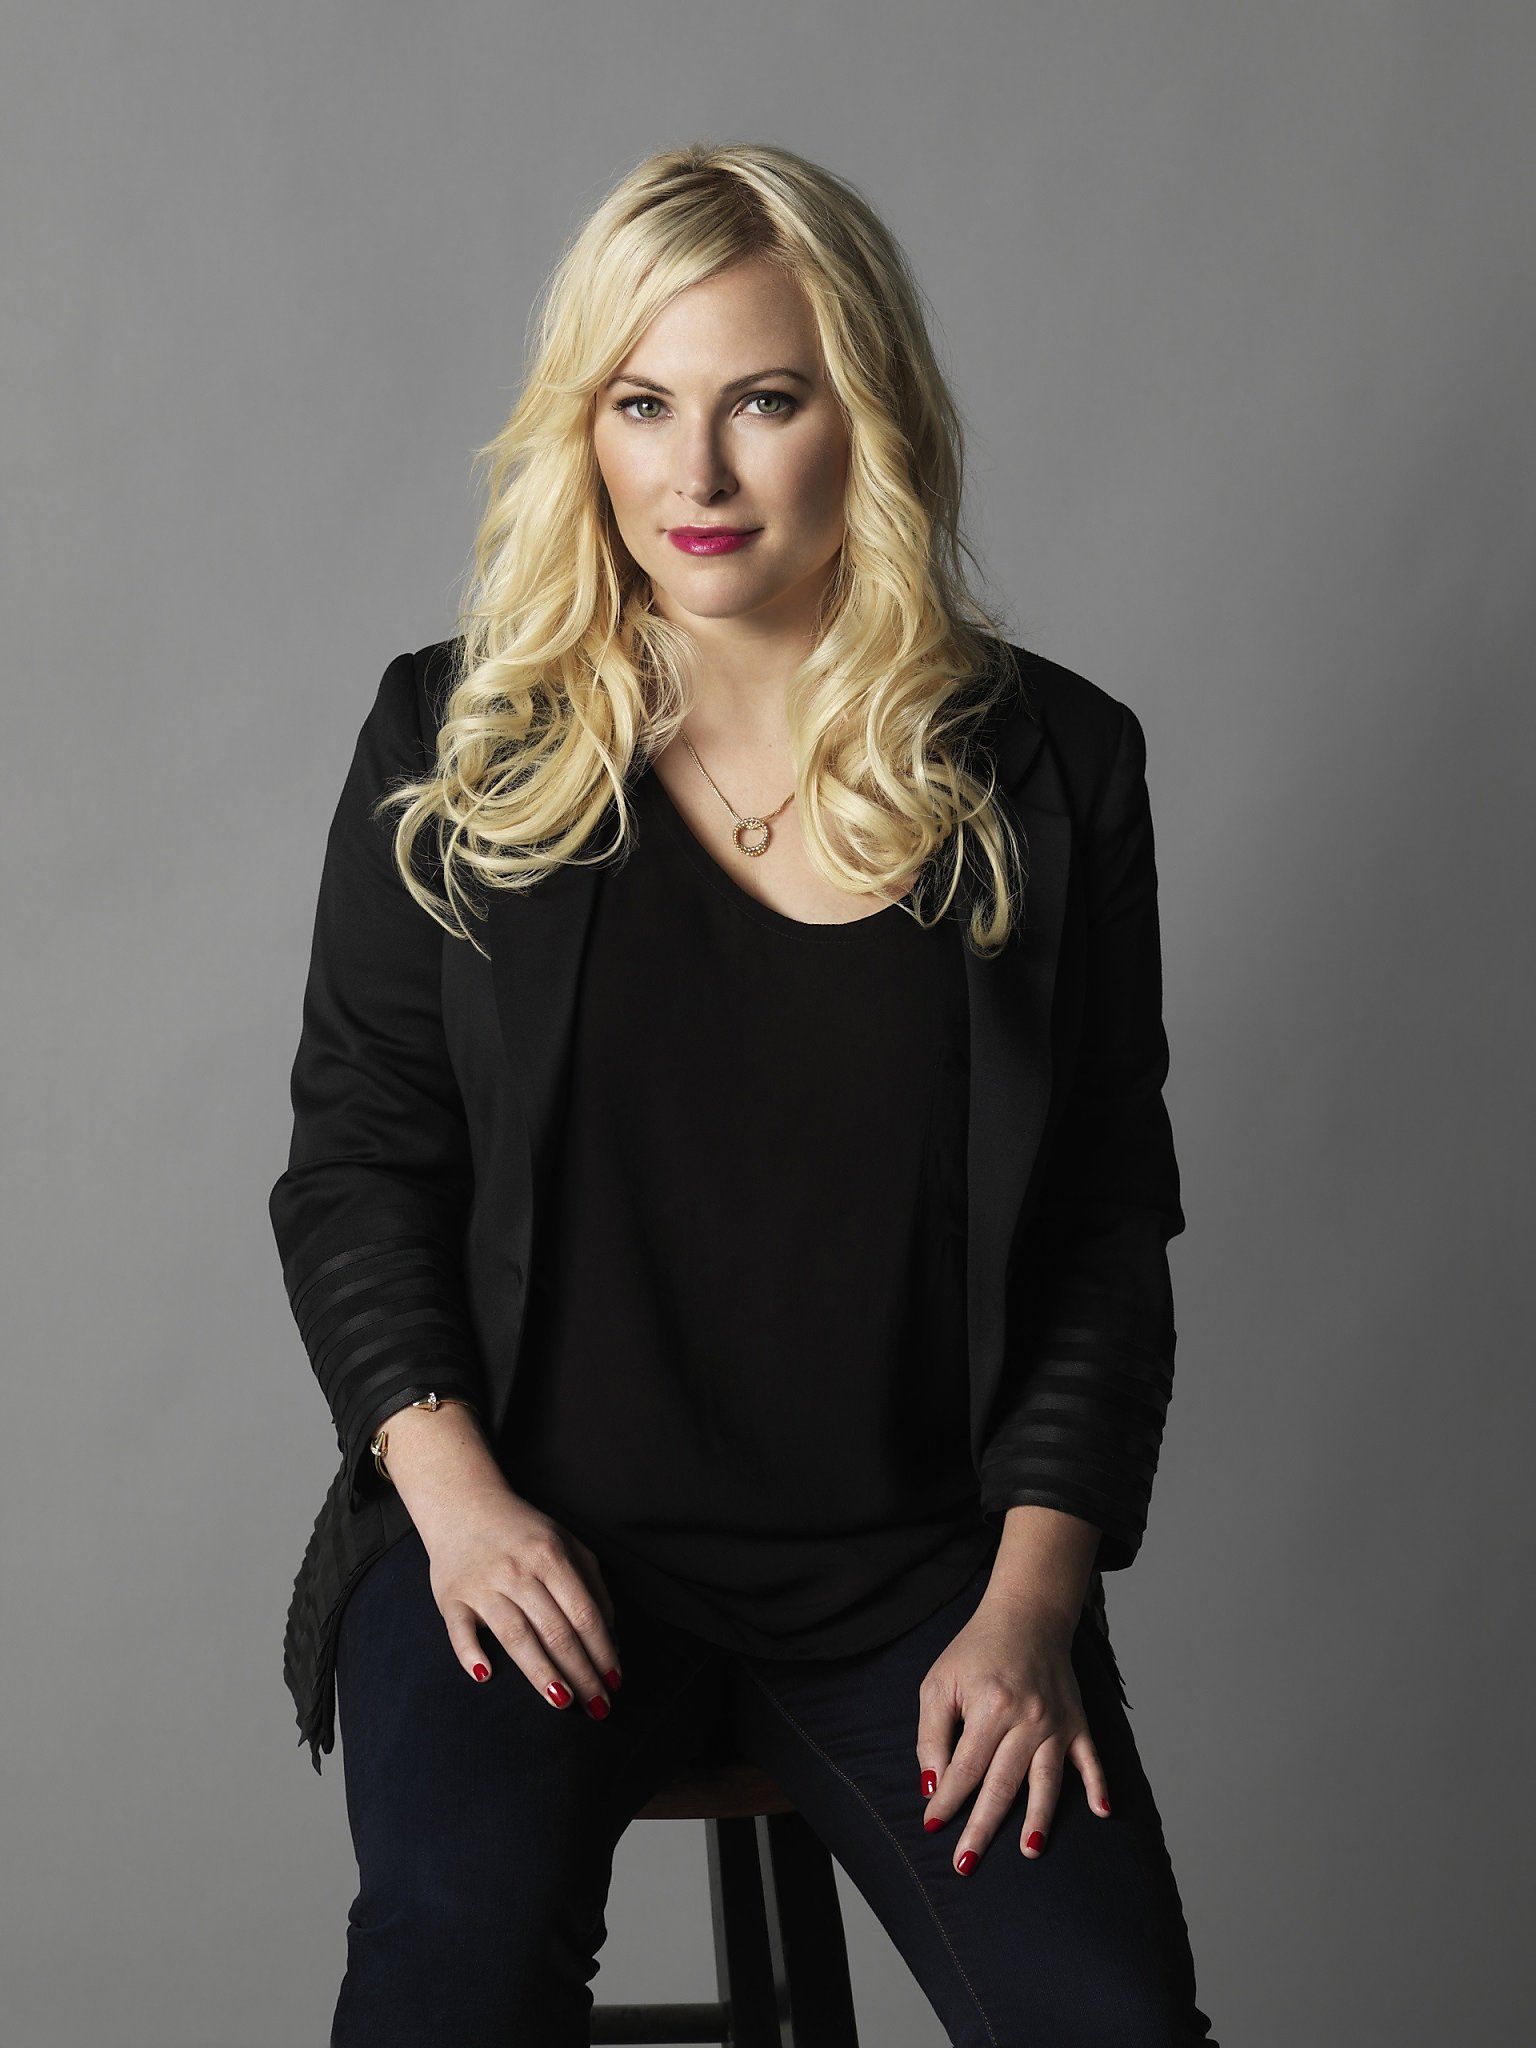 Meghan McCain has a hot body Check out all her 2015 measurements including bra size weight height and cup size Does she have breast implants